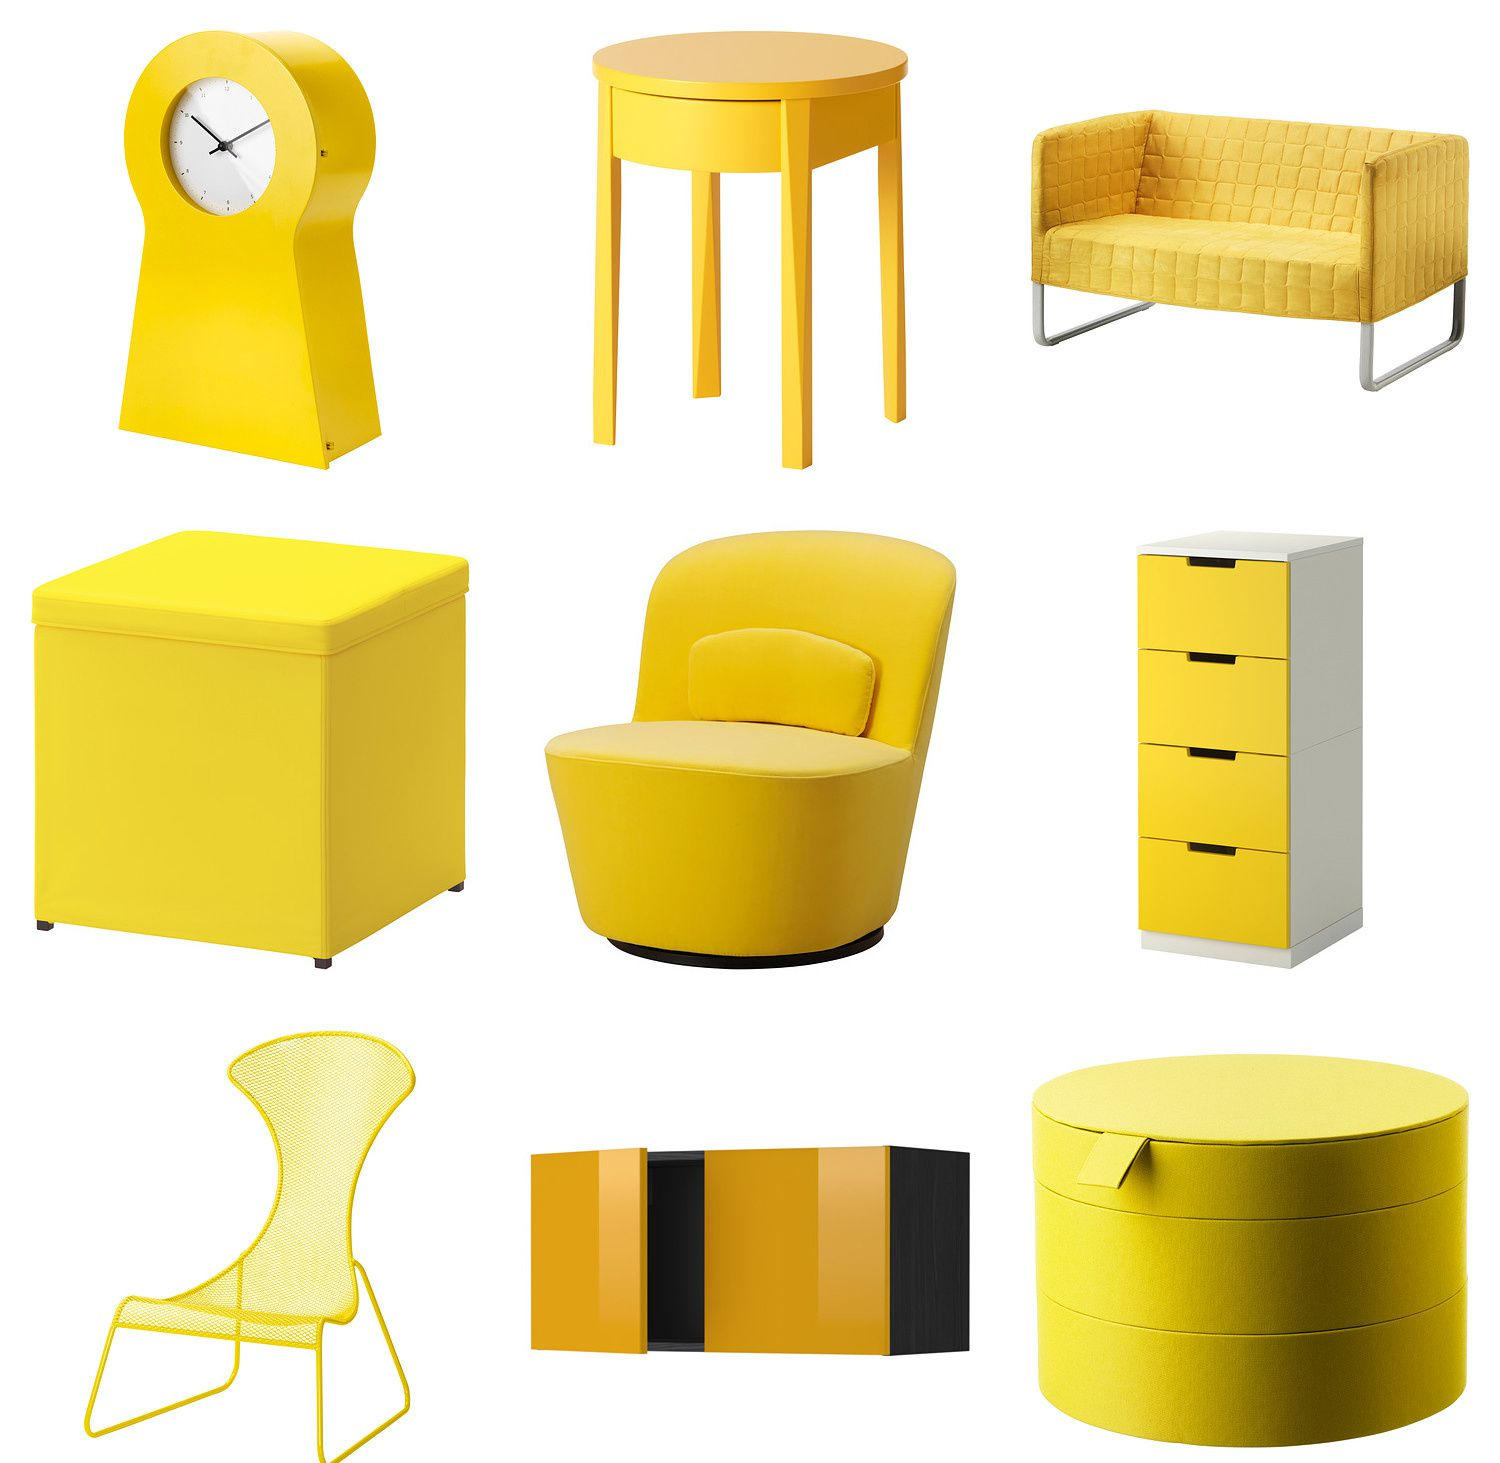 fais gaffe le jaune revient le carnet de jimidi. Black Bedroom Furniture Sets. Home Design Ideas